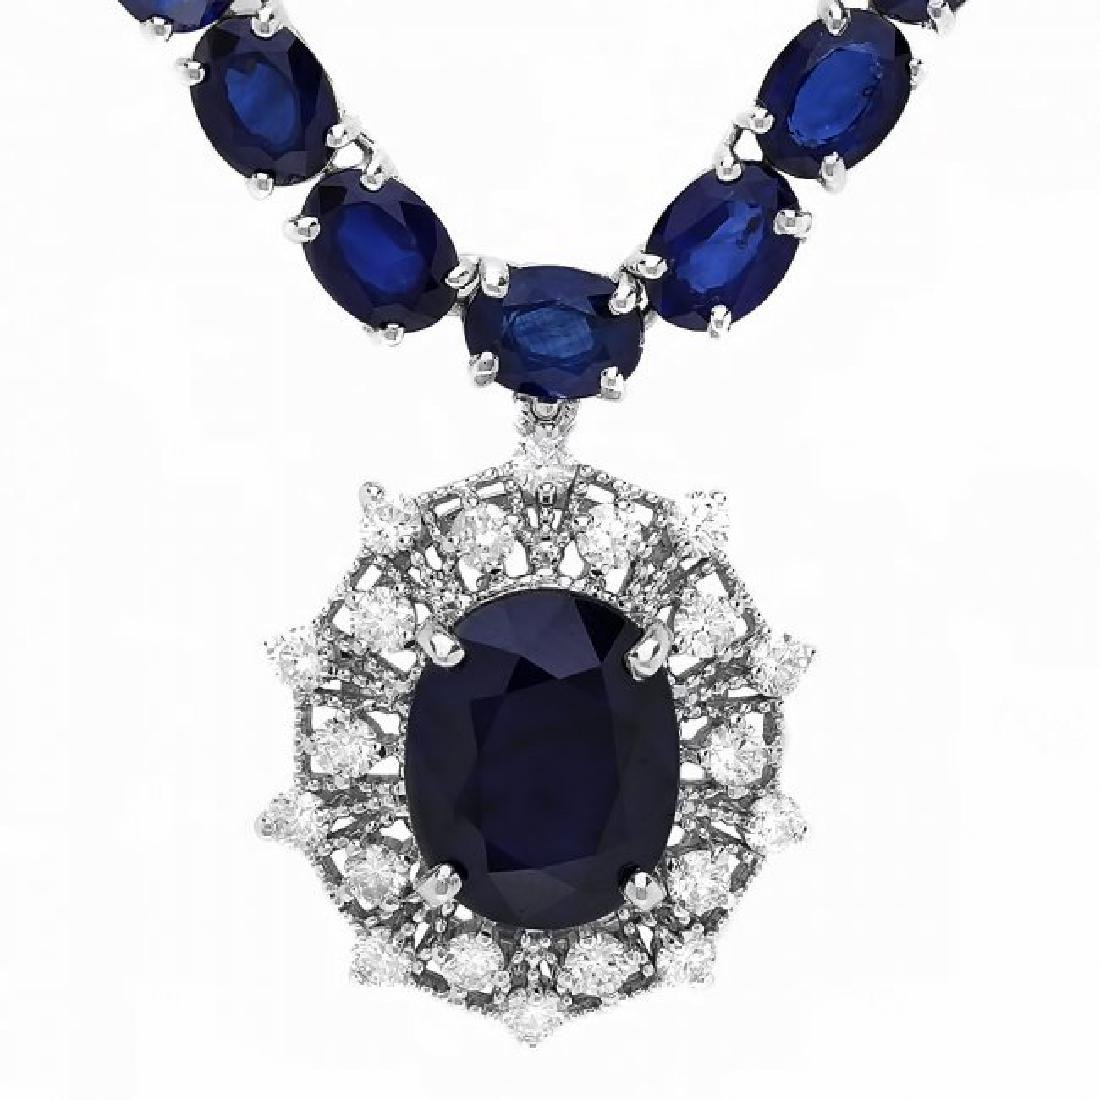 14k Gold 58ct Sapphire 1.15ct Diamond Necklace - 3